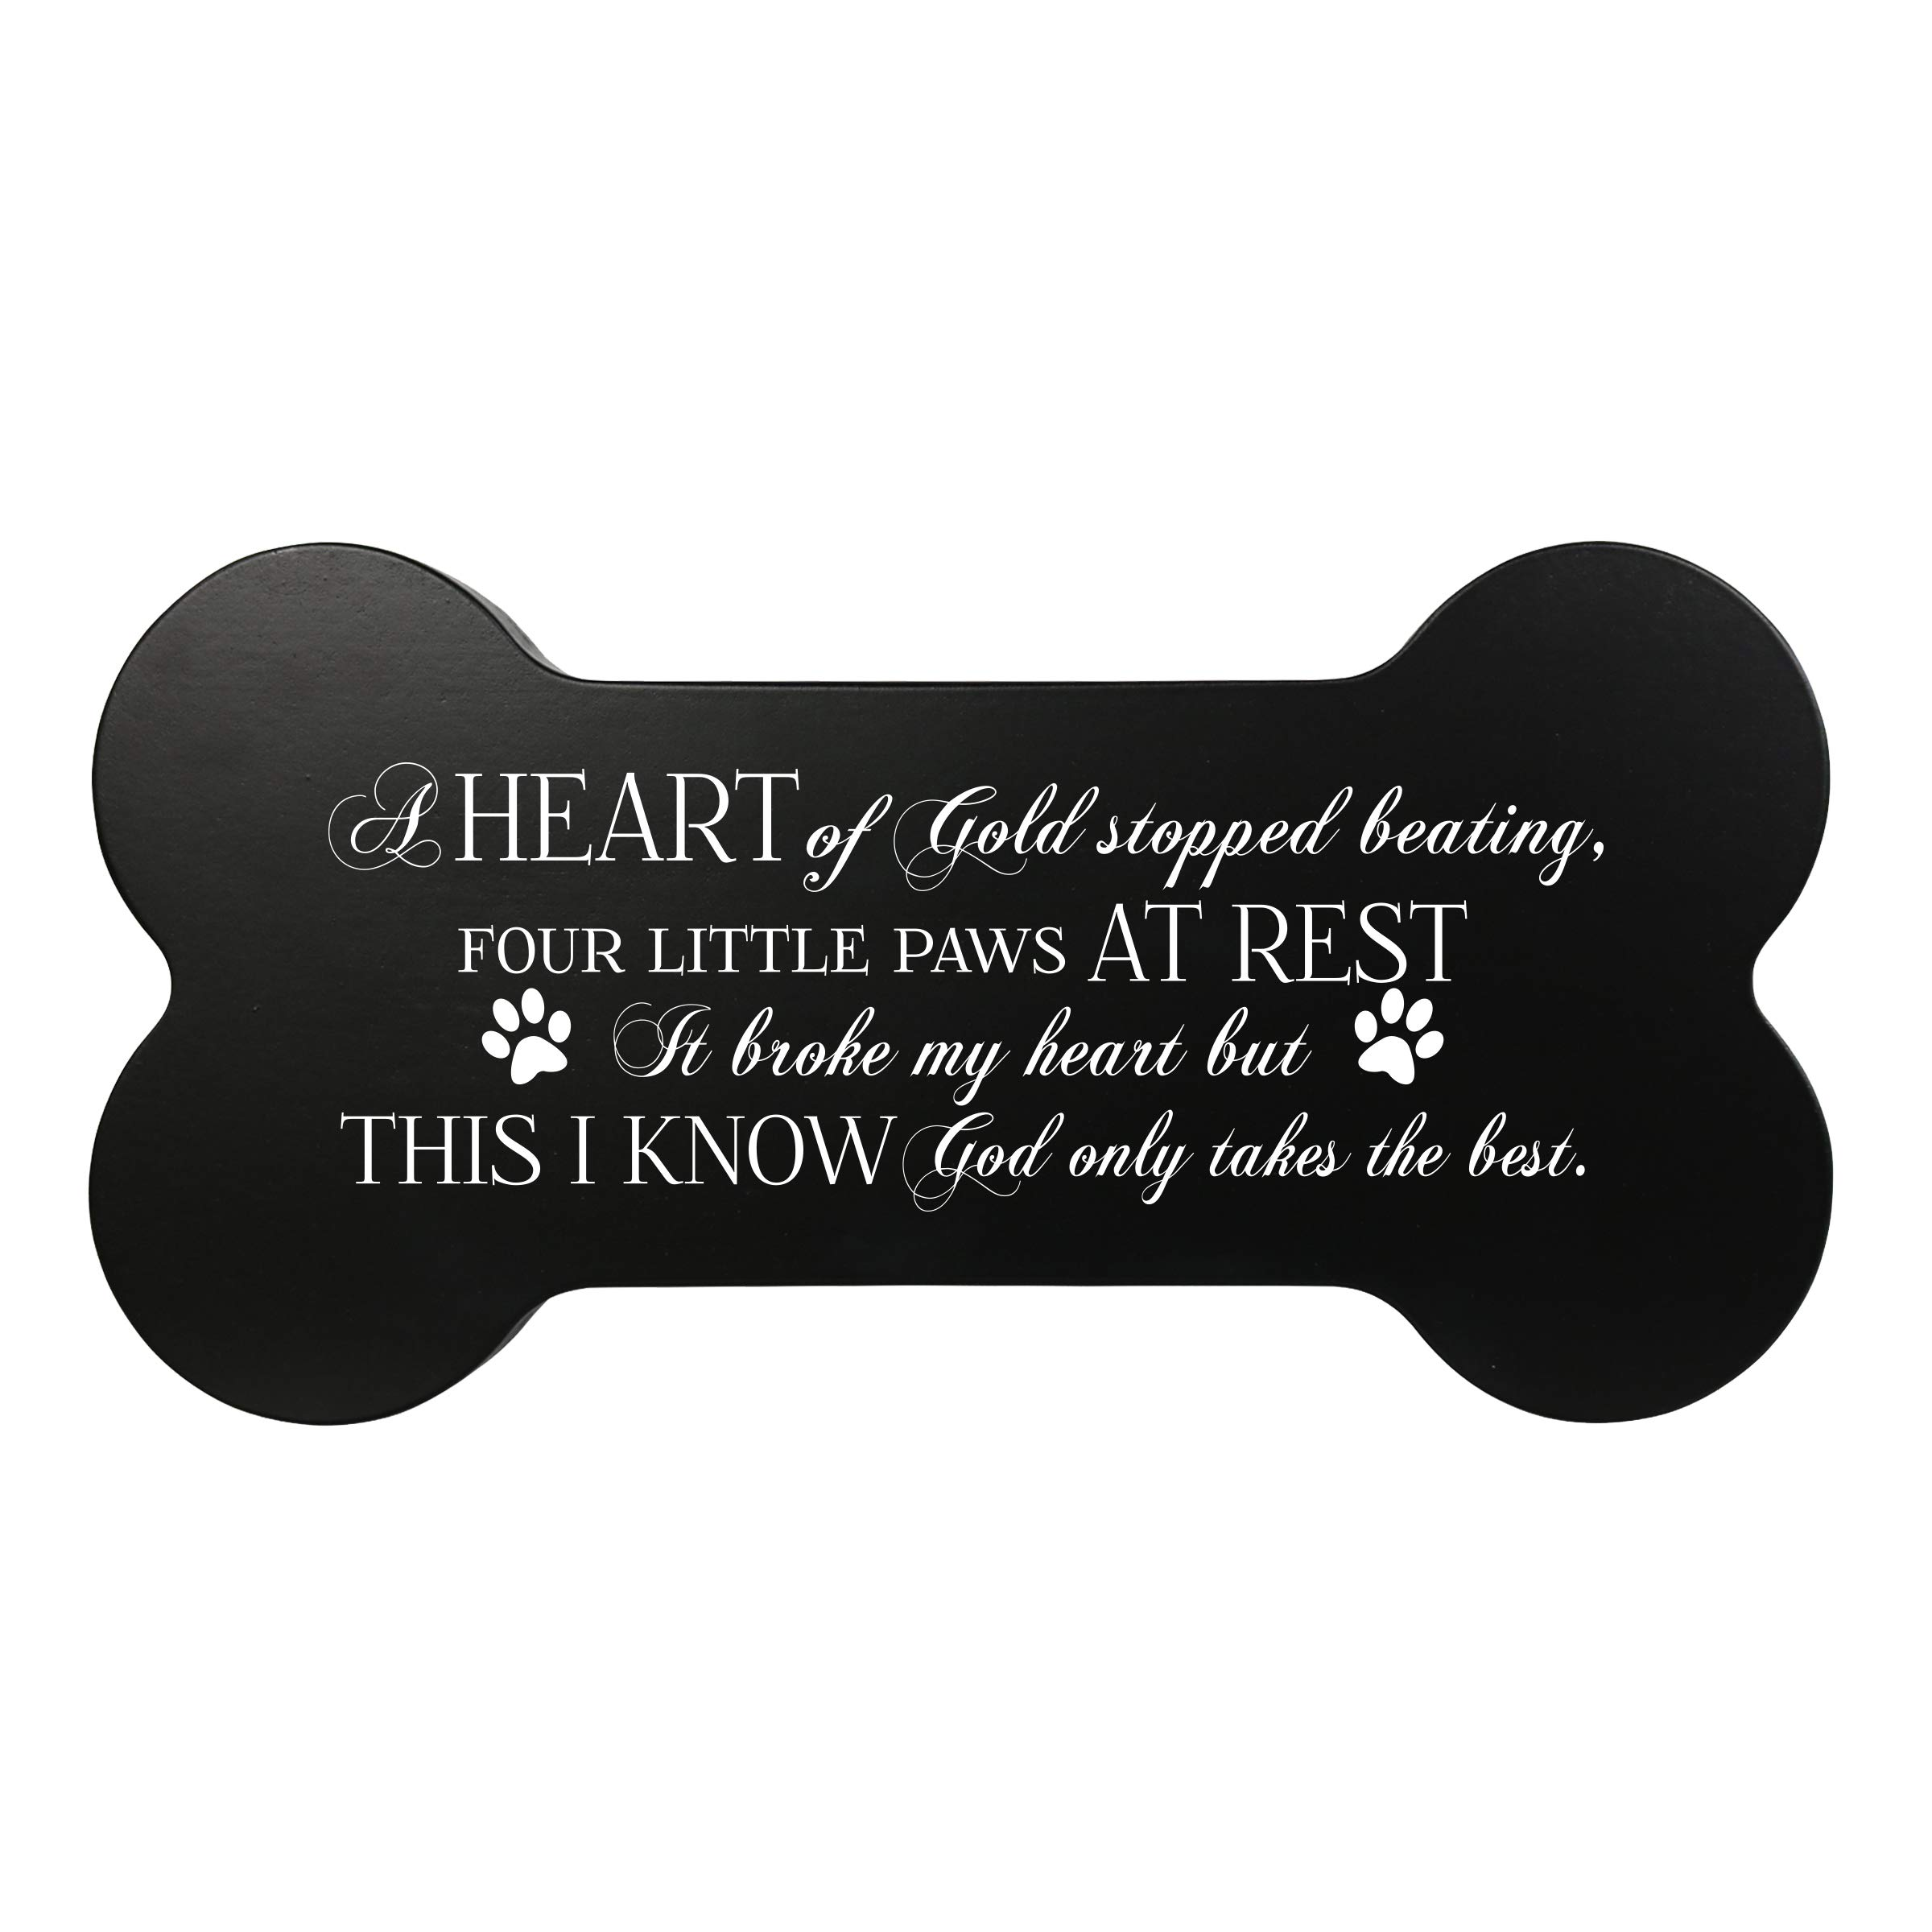 LifeSong Milestones Dog Bone Cremation Urn Memorial Keepsake Box in Loving Memory for Loss of Loved Pet Small Urn for Dog Ashes Comfort Gift 5'' x 10'' Heart of Gold (Black)